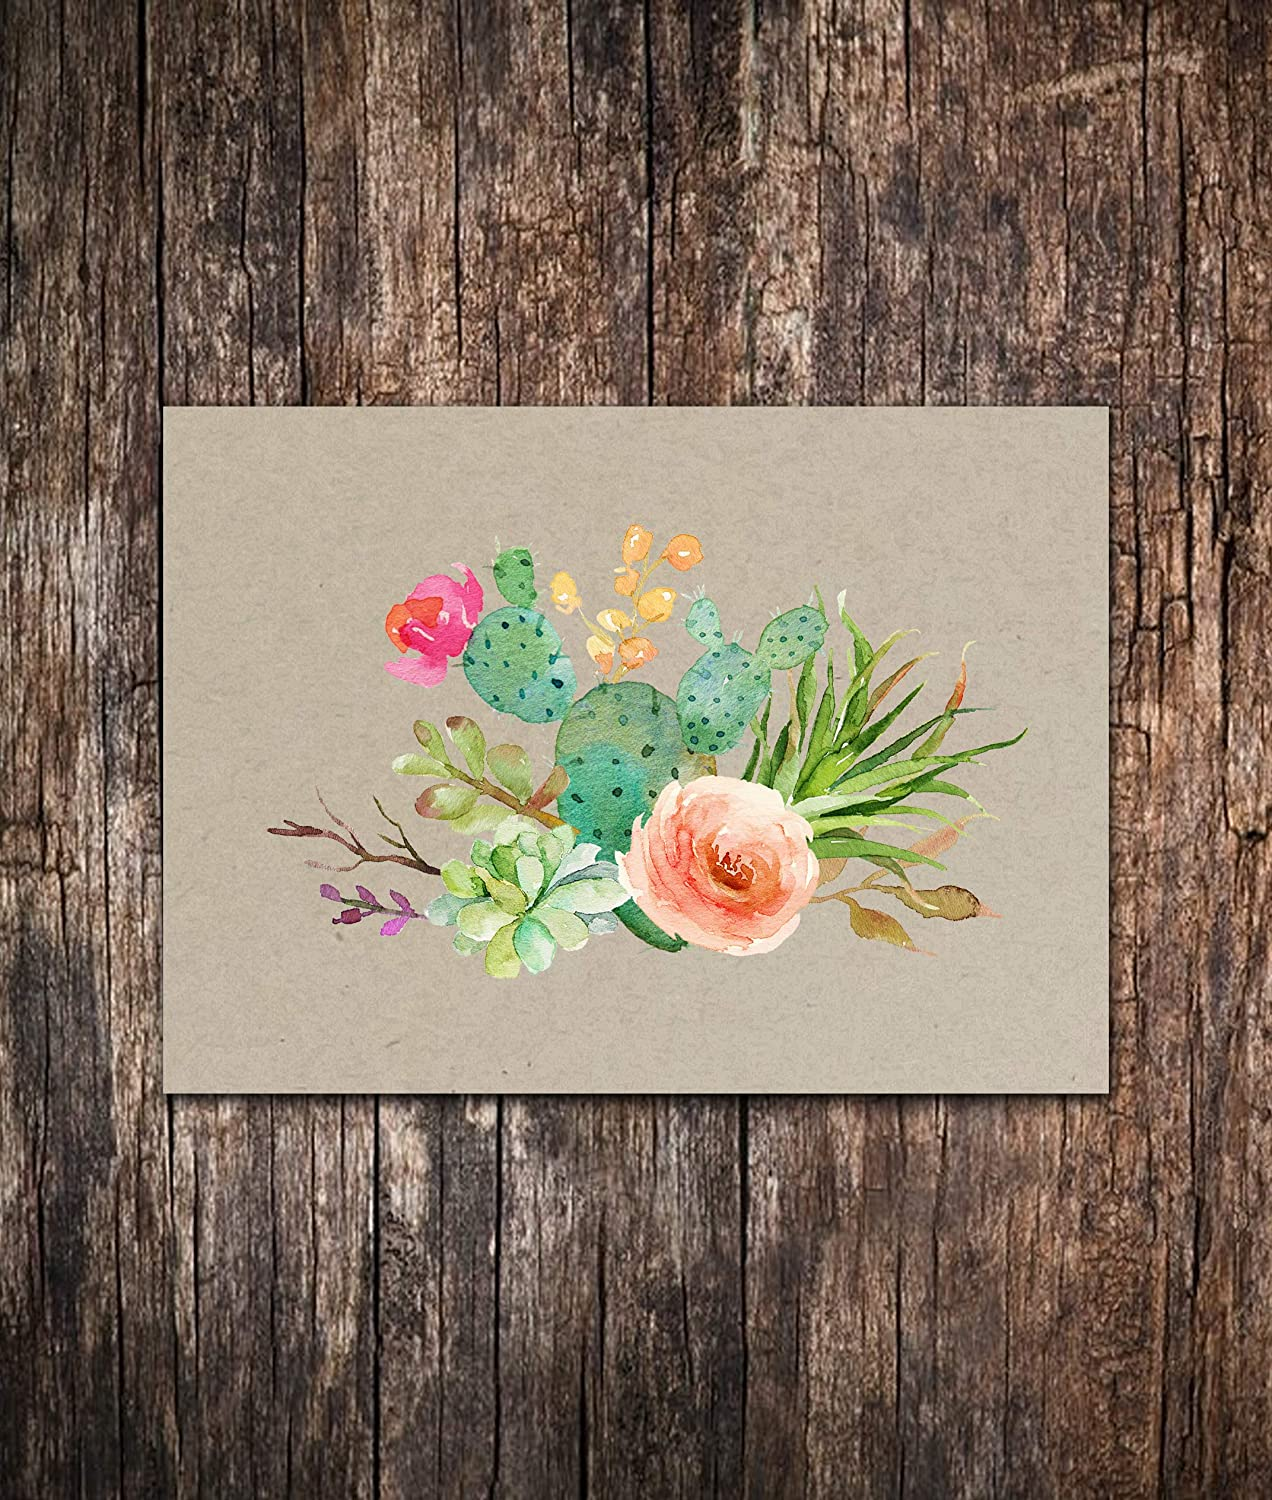 Succulent Blank Note Cards Set of 10-4.25 x 5.5 Note Cards - Blank Note Cards - Succulent Stationary - Succulent Gifts